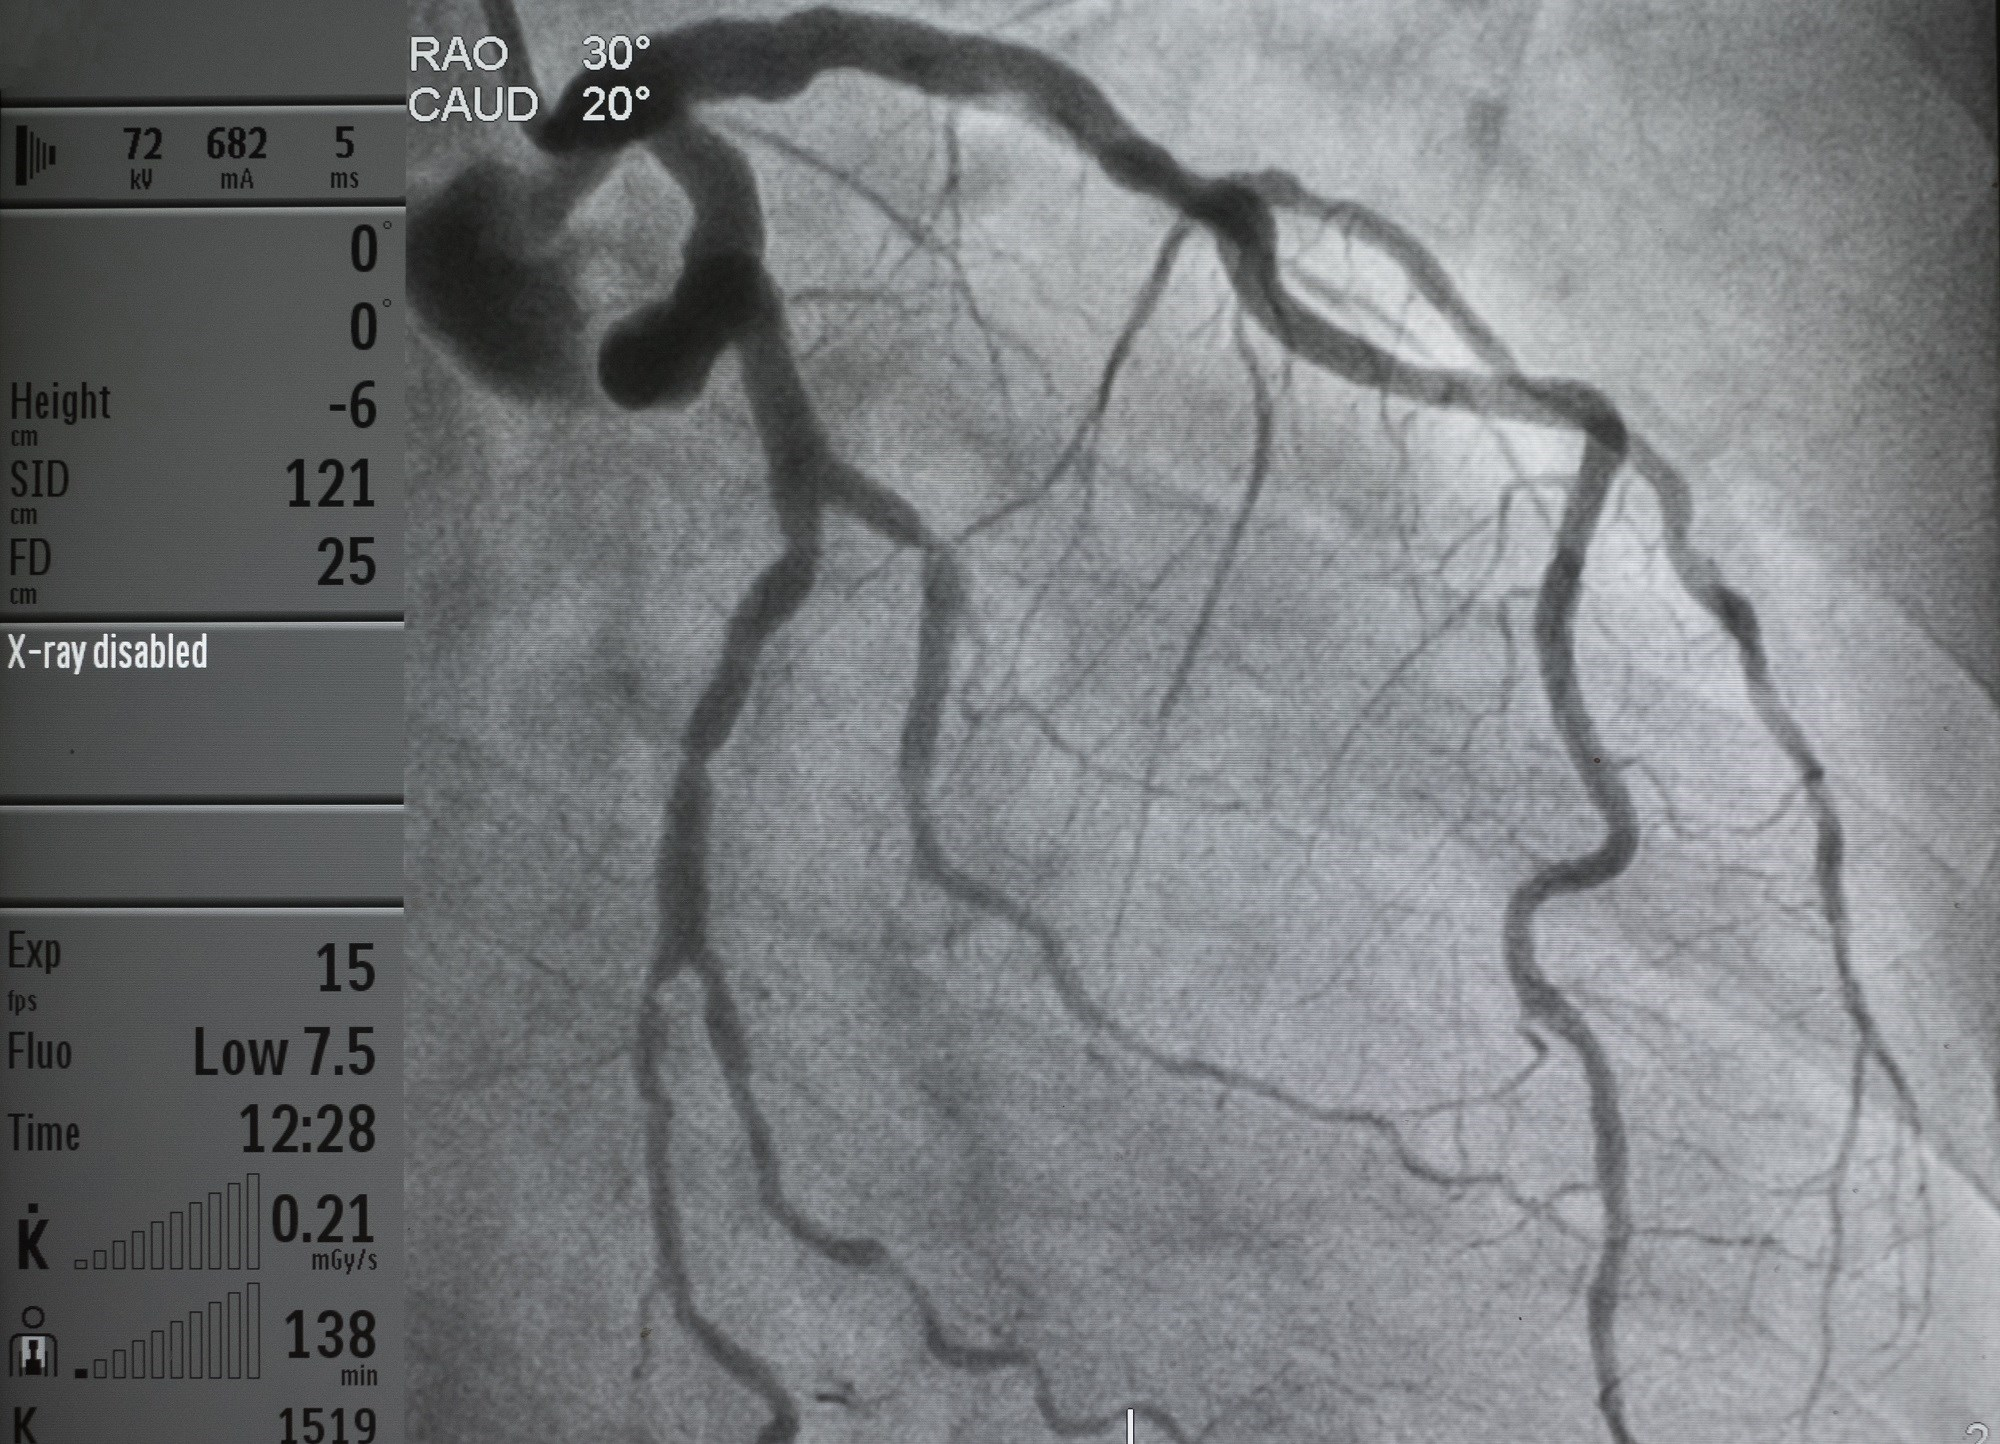 After nicardipine treatment, all vessels showed TIMI 3 flow and TFC <28.